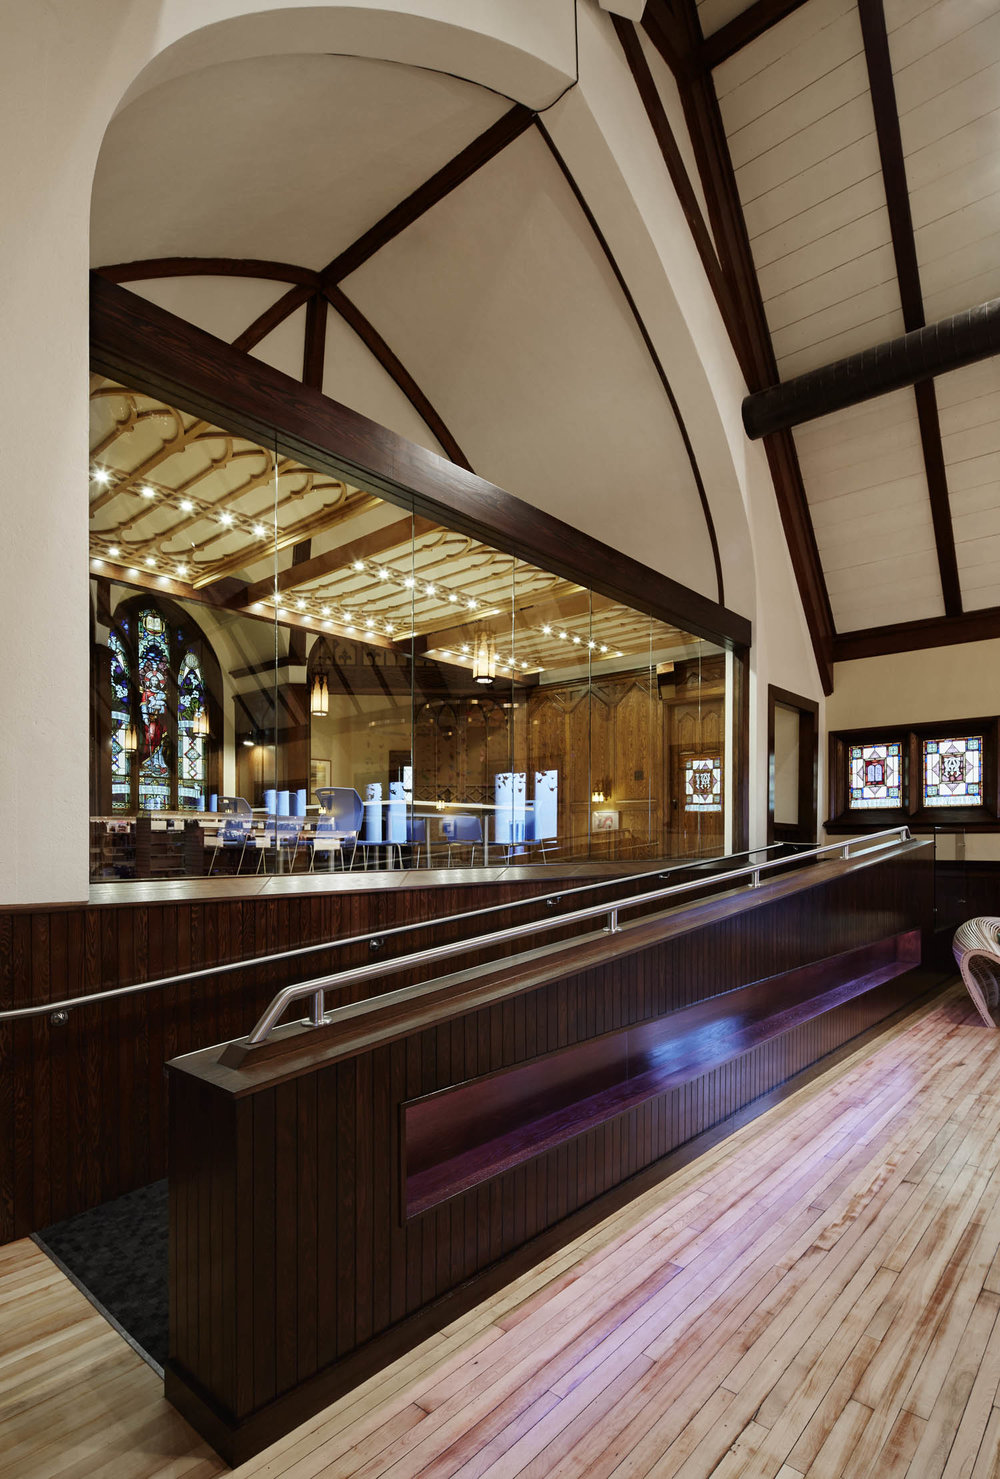 houdinidesign_ARCHITECTS_Kentville Library_Kentville_Annapolis Valley_Adaptive_Reuse_Church_Renovation_Accessible_Ramp.jpg